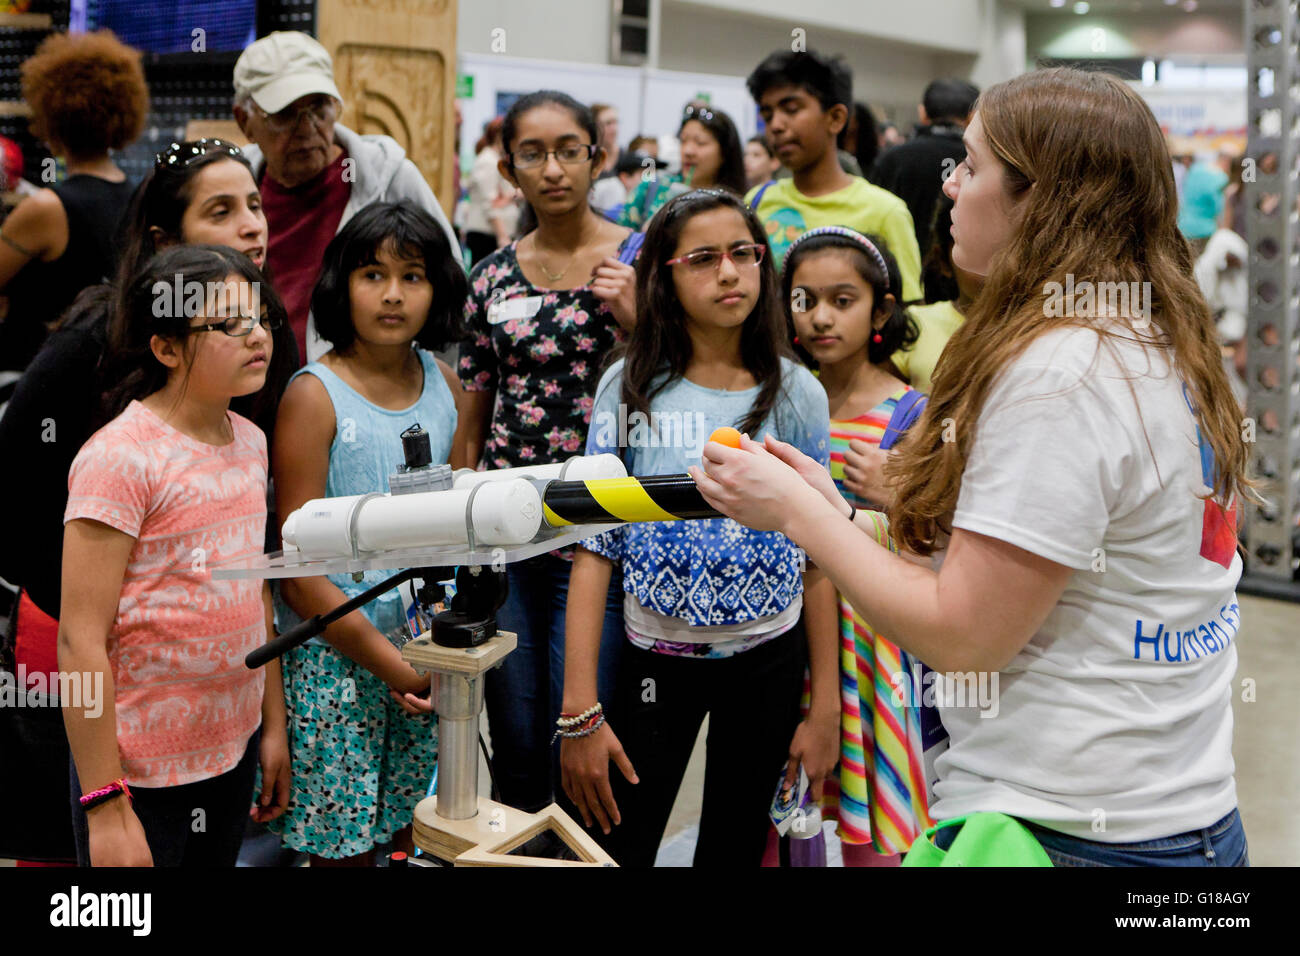 Female students learning physics at science fair - USA - Stock Image